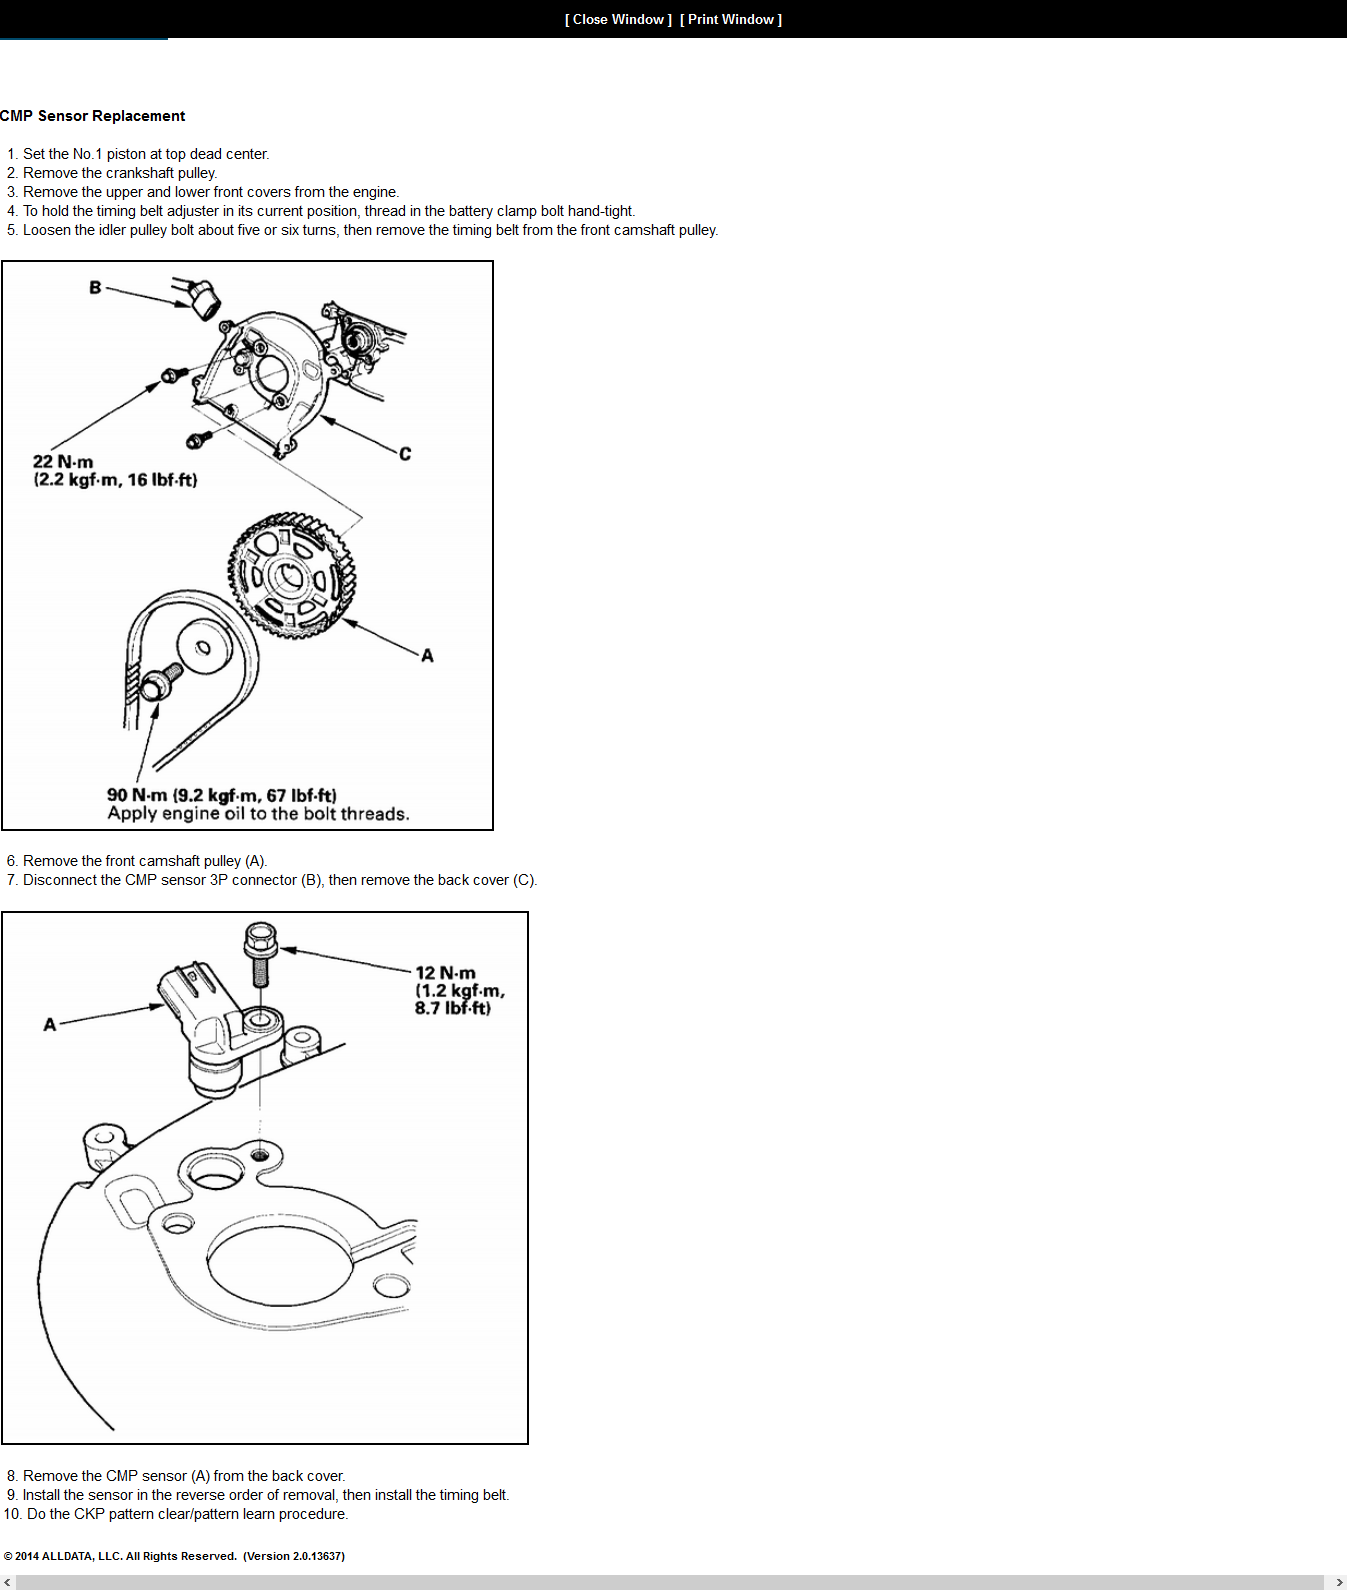 Where Is The Cam Sensor Located On My 2005 Acura Tl 3.2